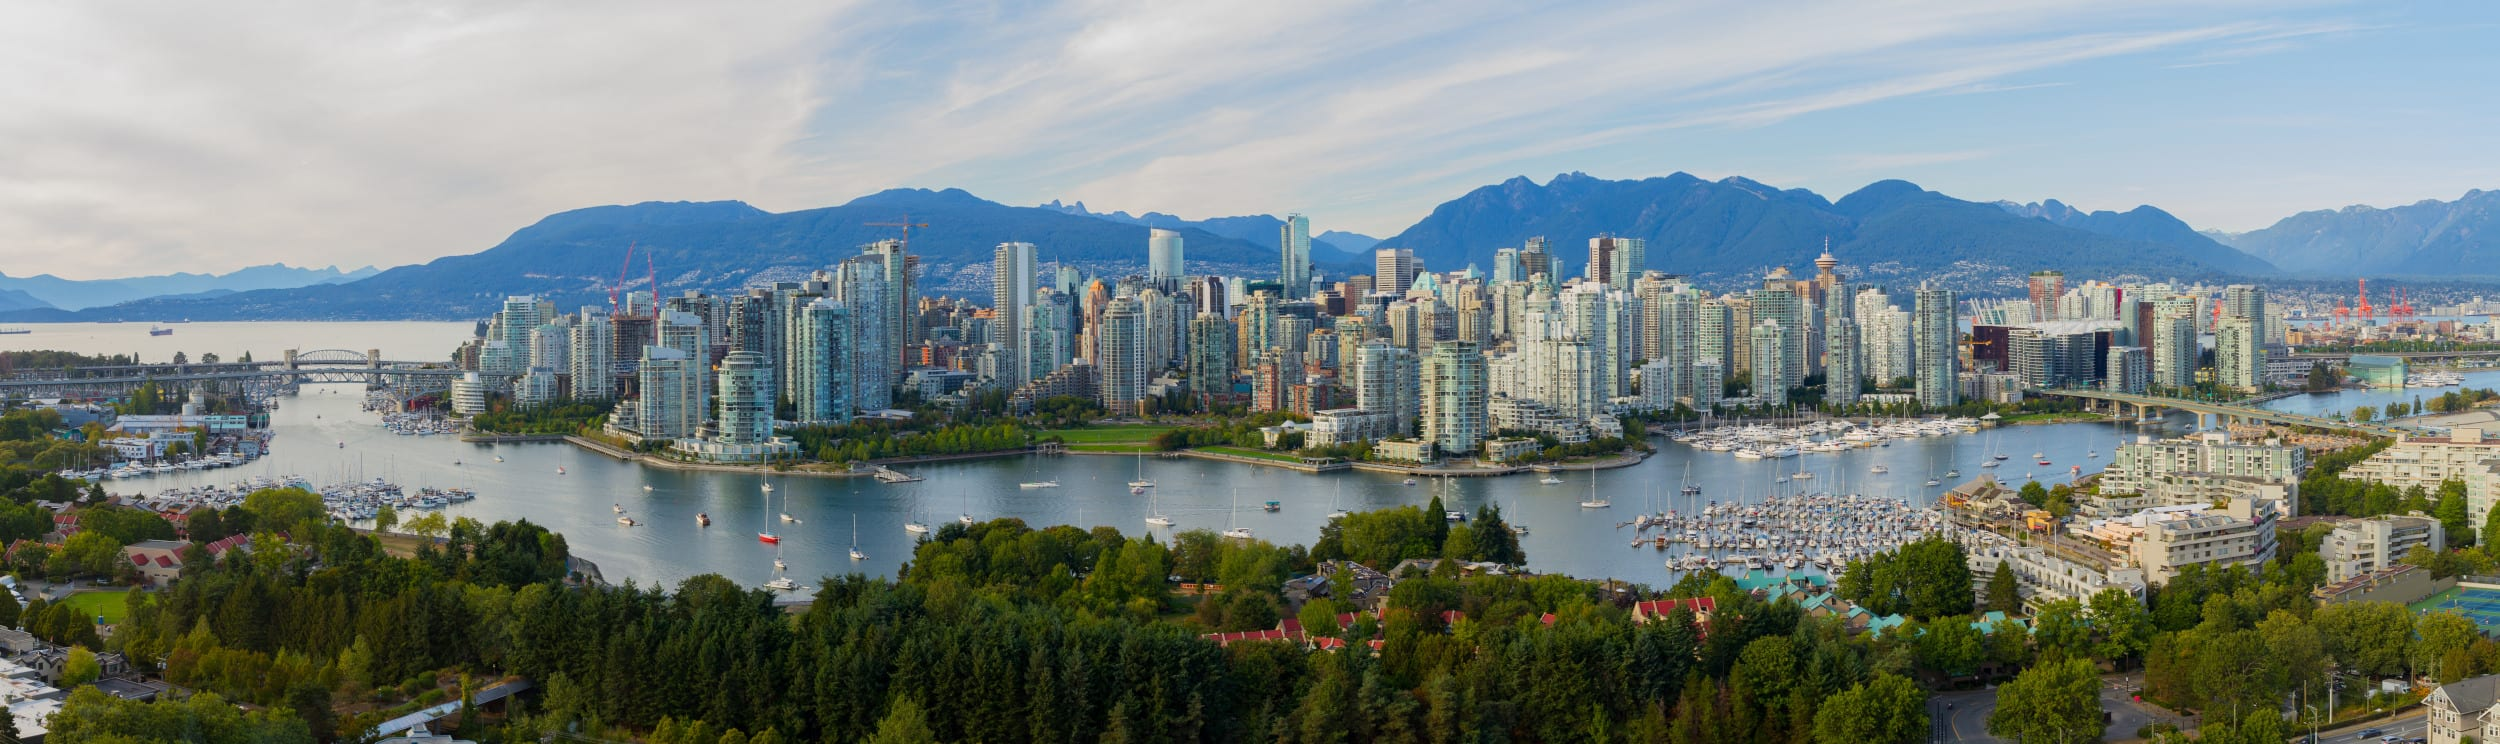 Panoramic view of Vancouver, Canada